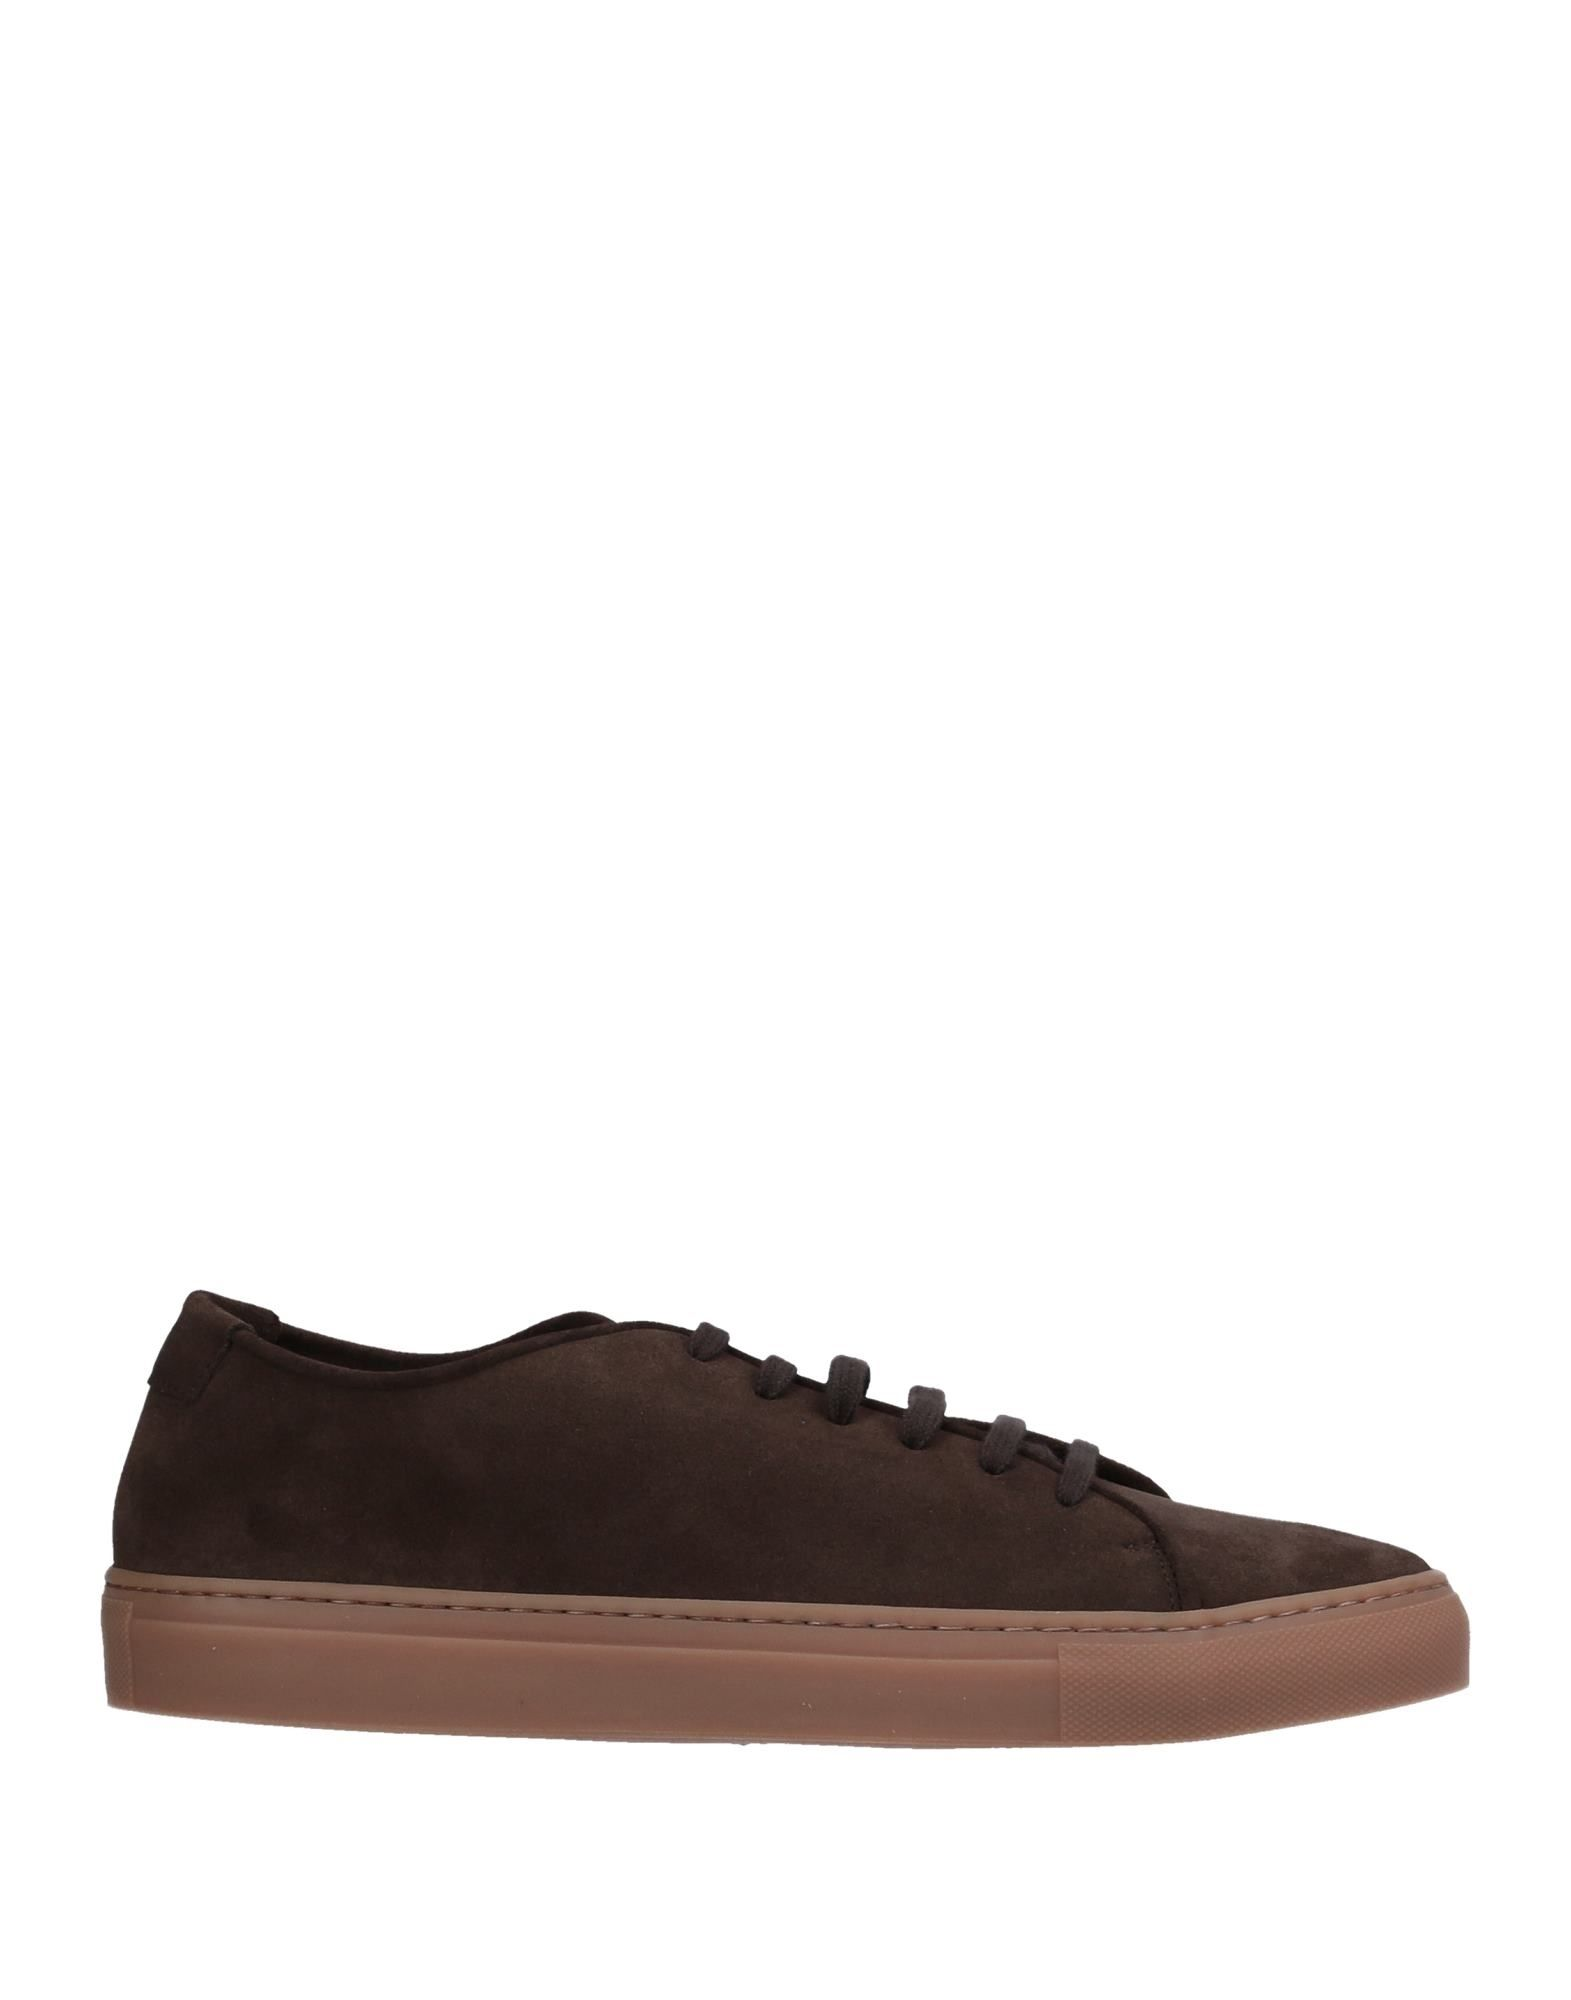 Sneakers Fabiano Ricci Homme - Sneakers Fabiano Ricci  Moka Chaussures femme pas cher homme et femme